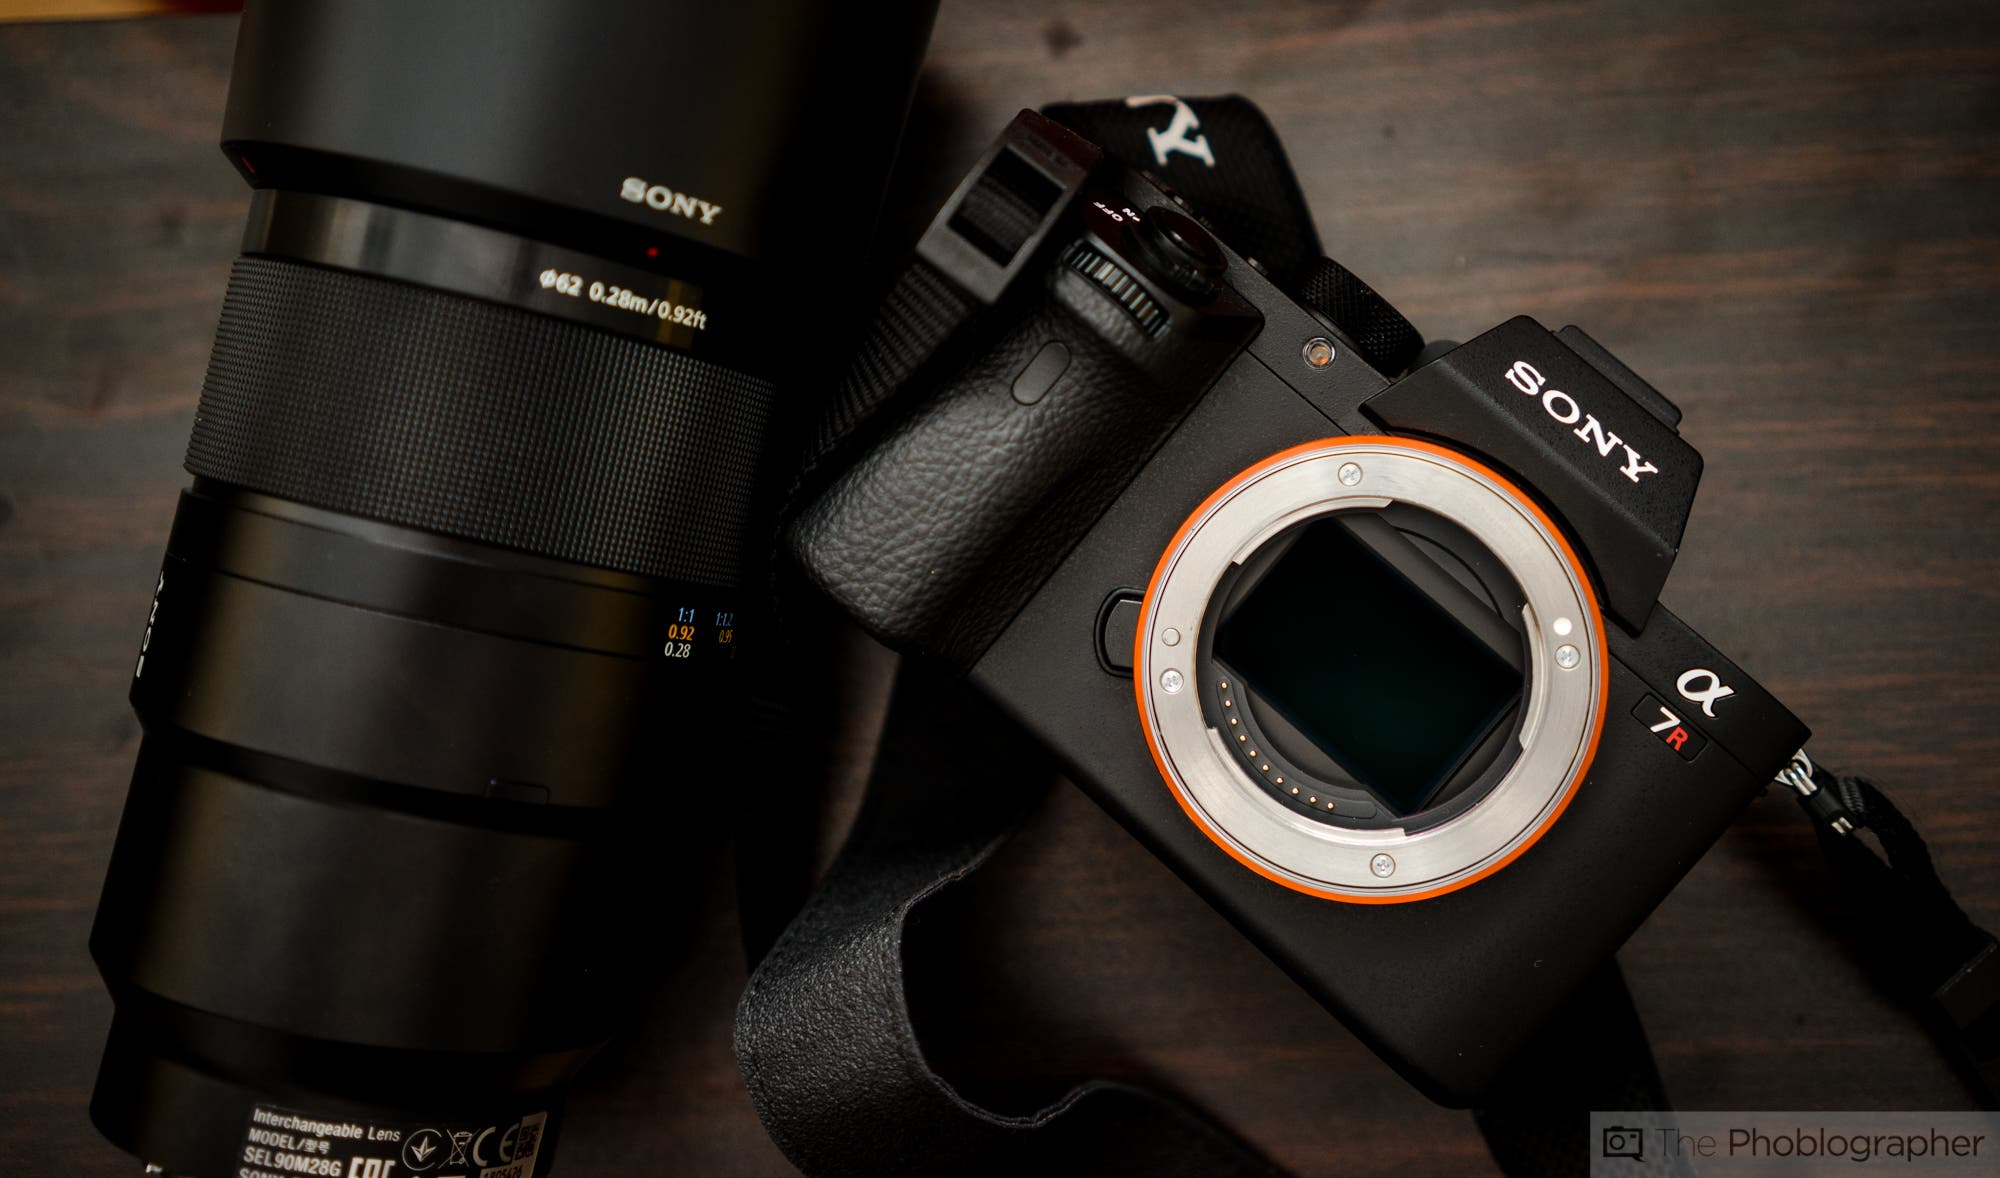 Cheap Photo: Sony a6000 Is $398, A7 II Kit Is $998, A7r II Is $1,498